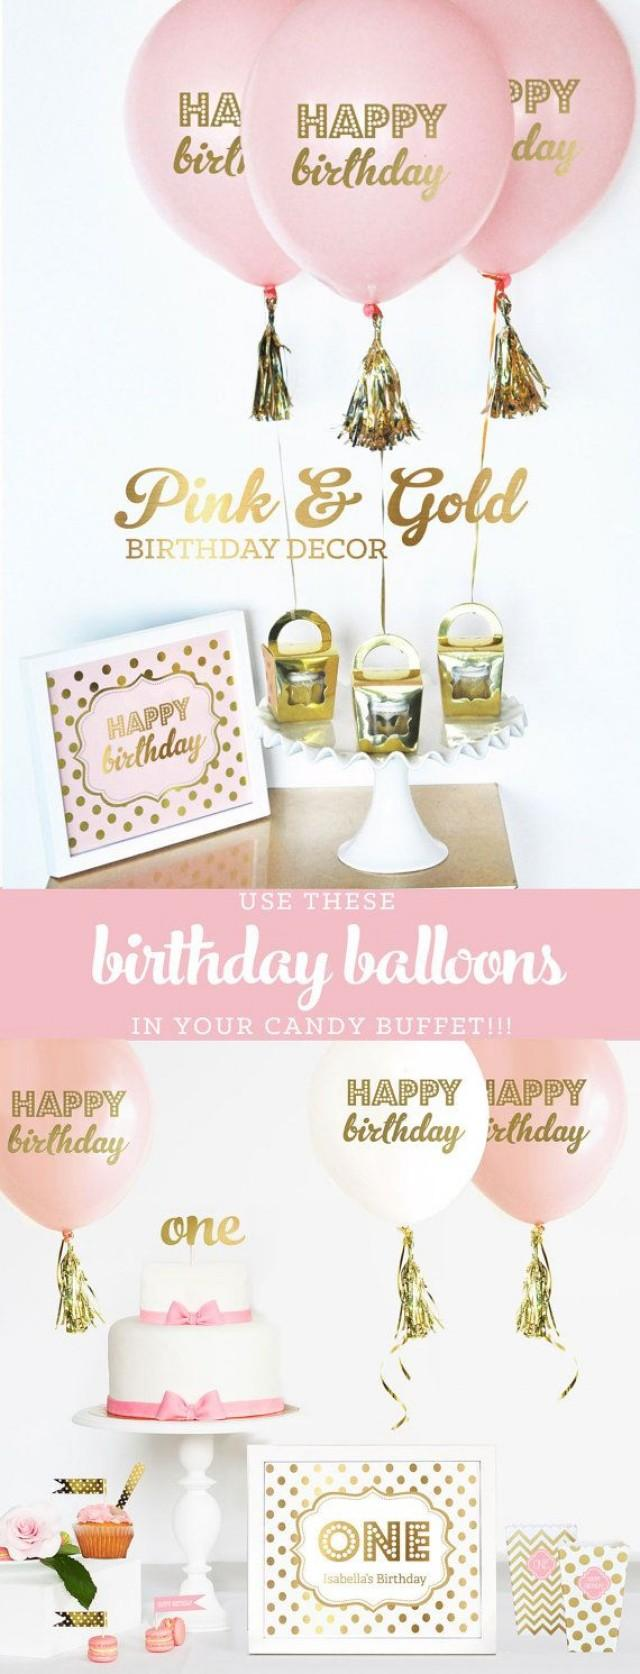 Pink And Gold Birthday Decorations First Party Decor 1st Girl Ideas Balloons Kit EB3110BIR